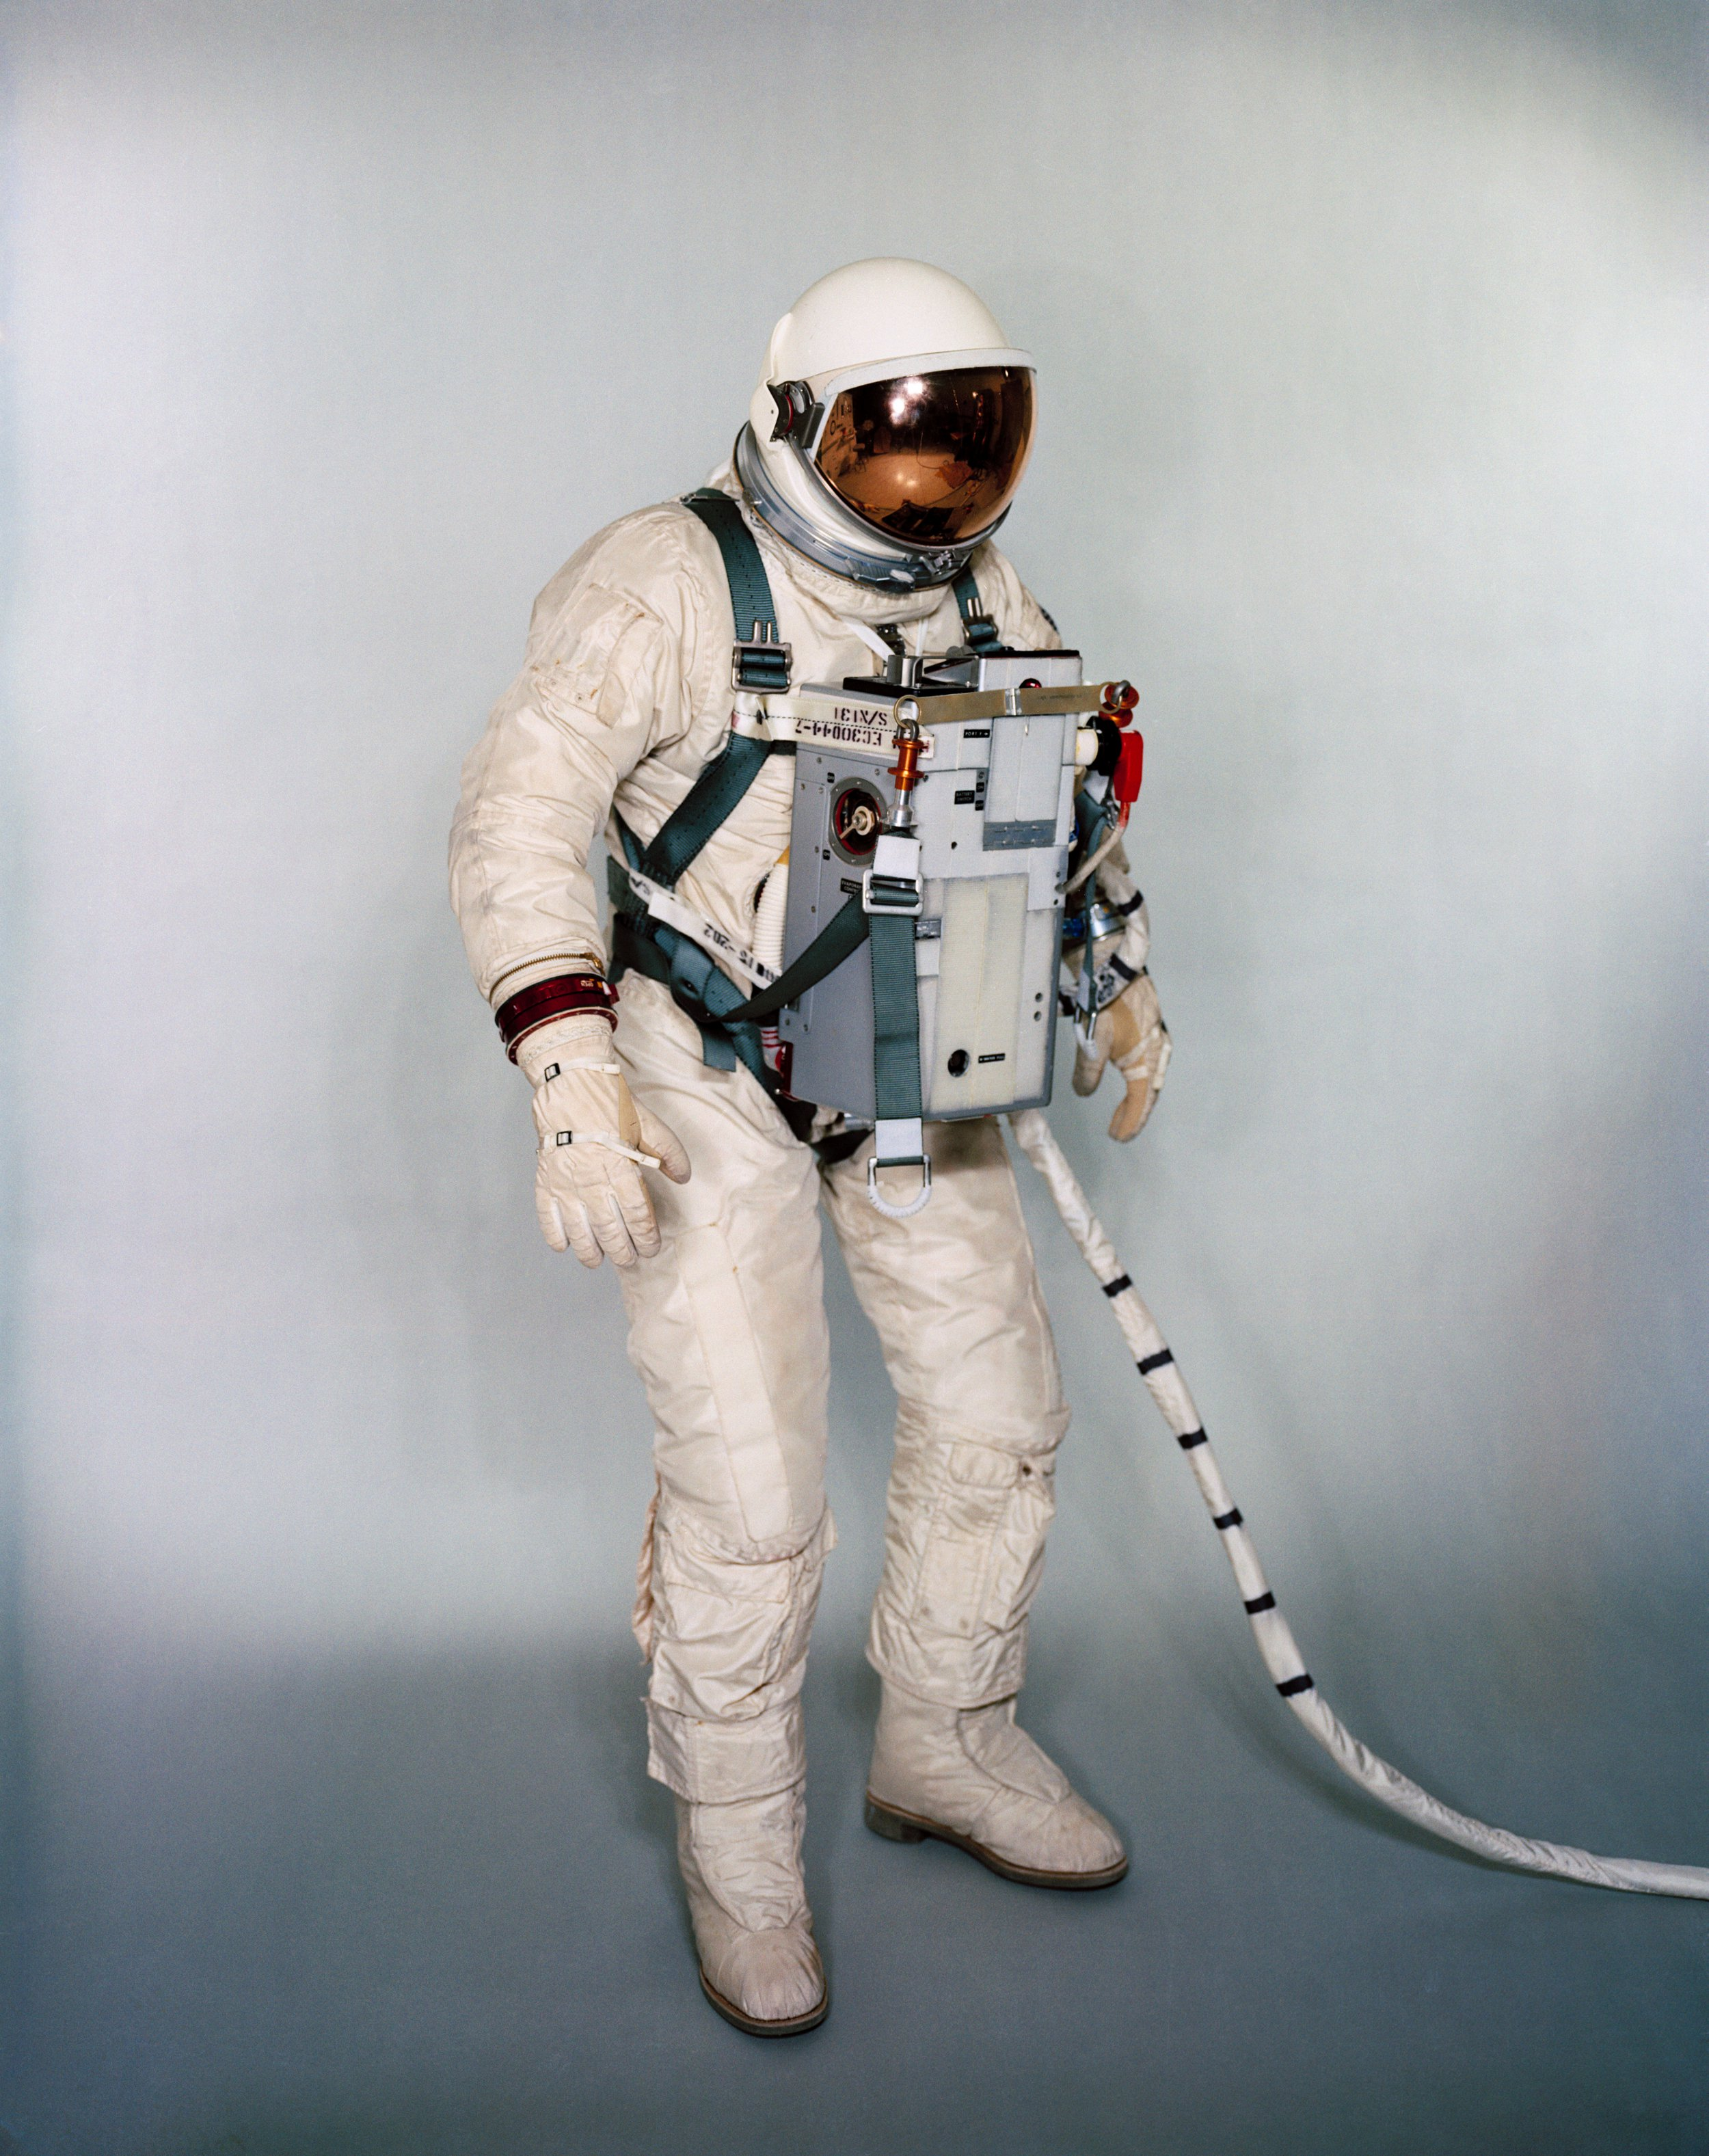 Gemini Space Suit (page 2) - Pics about space